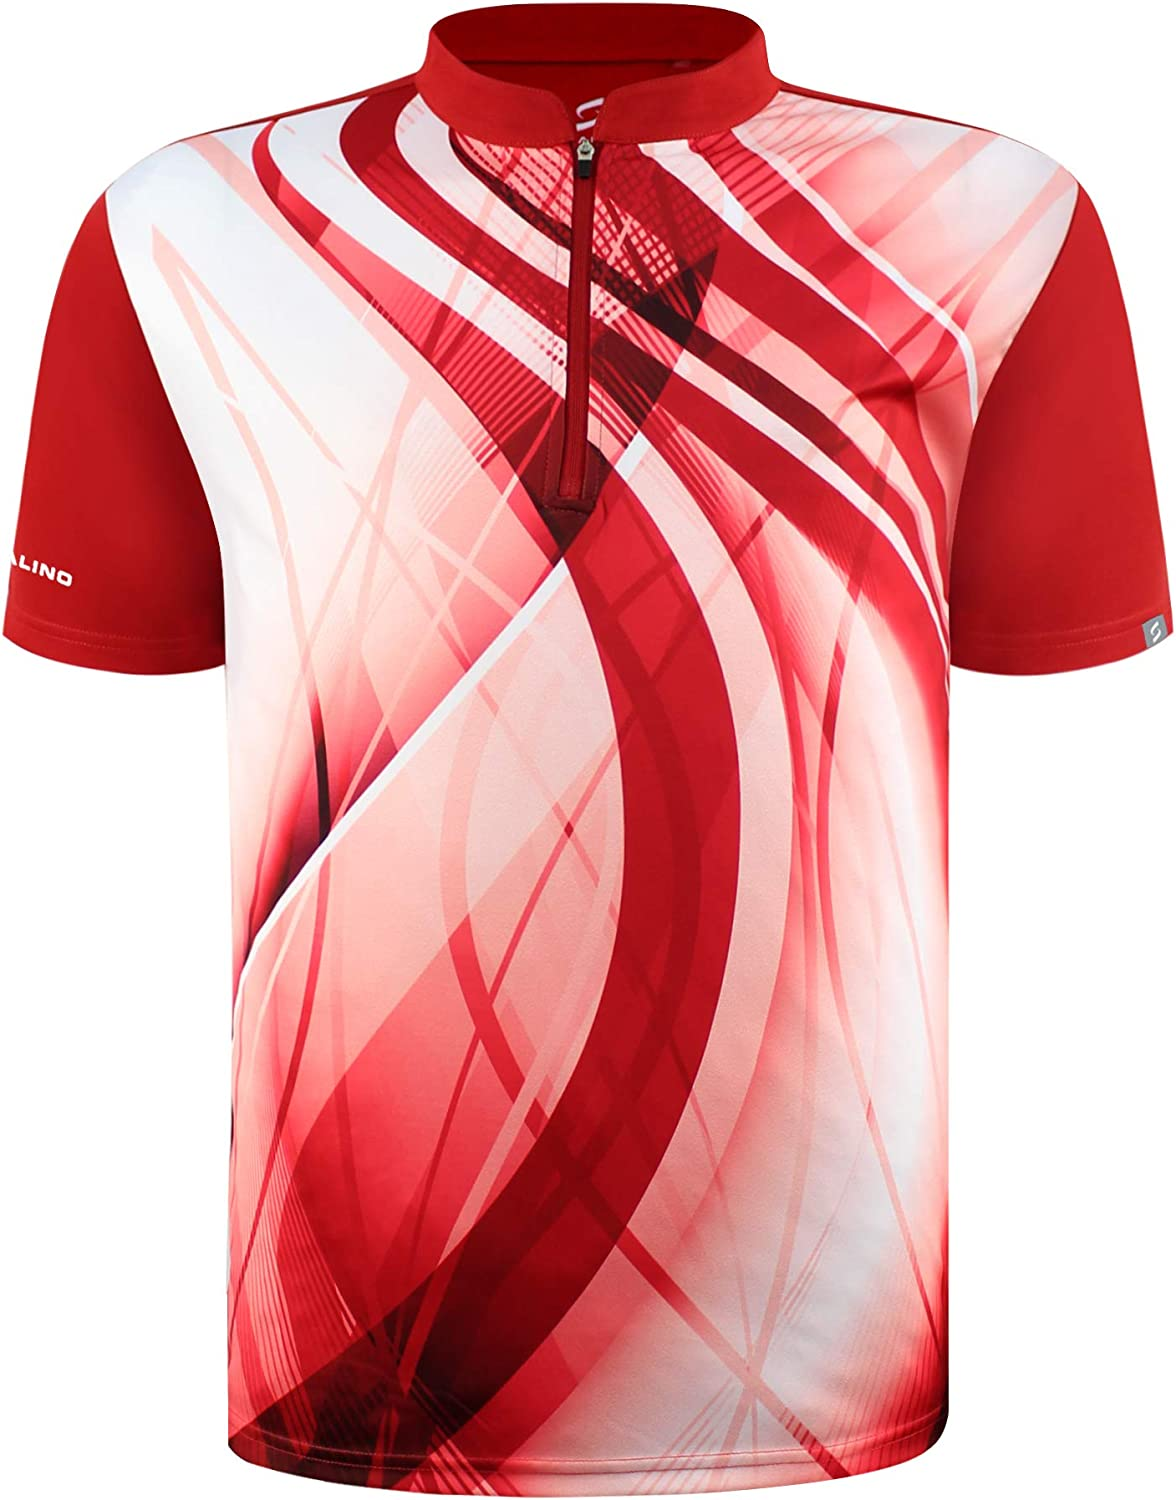 SAVALINO Men's excellence NEW Bowling Sublimation Wick Printed Material Jersey